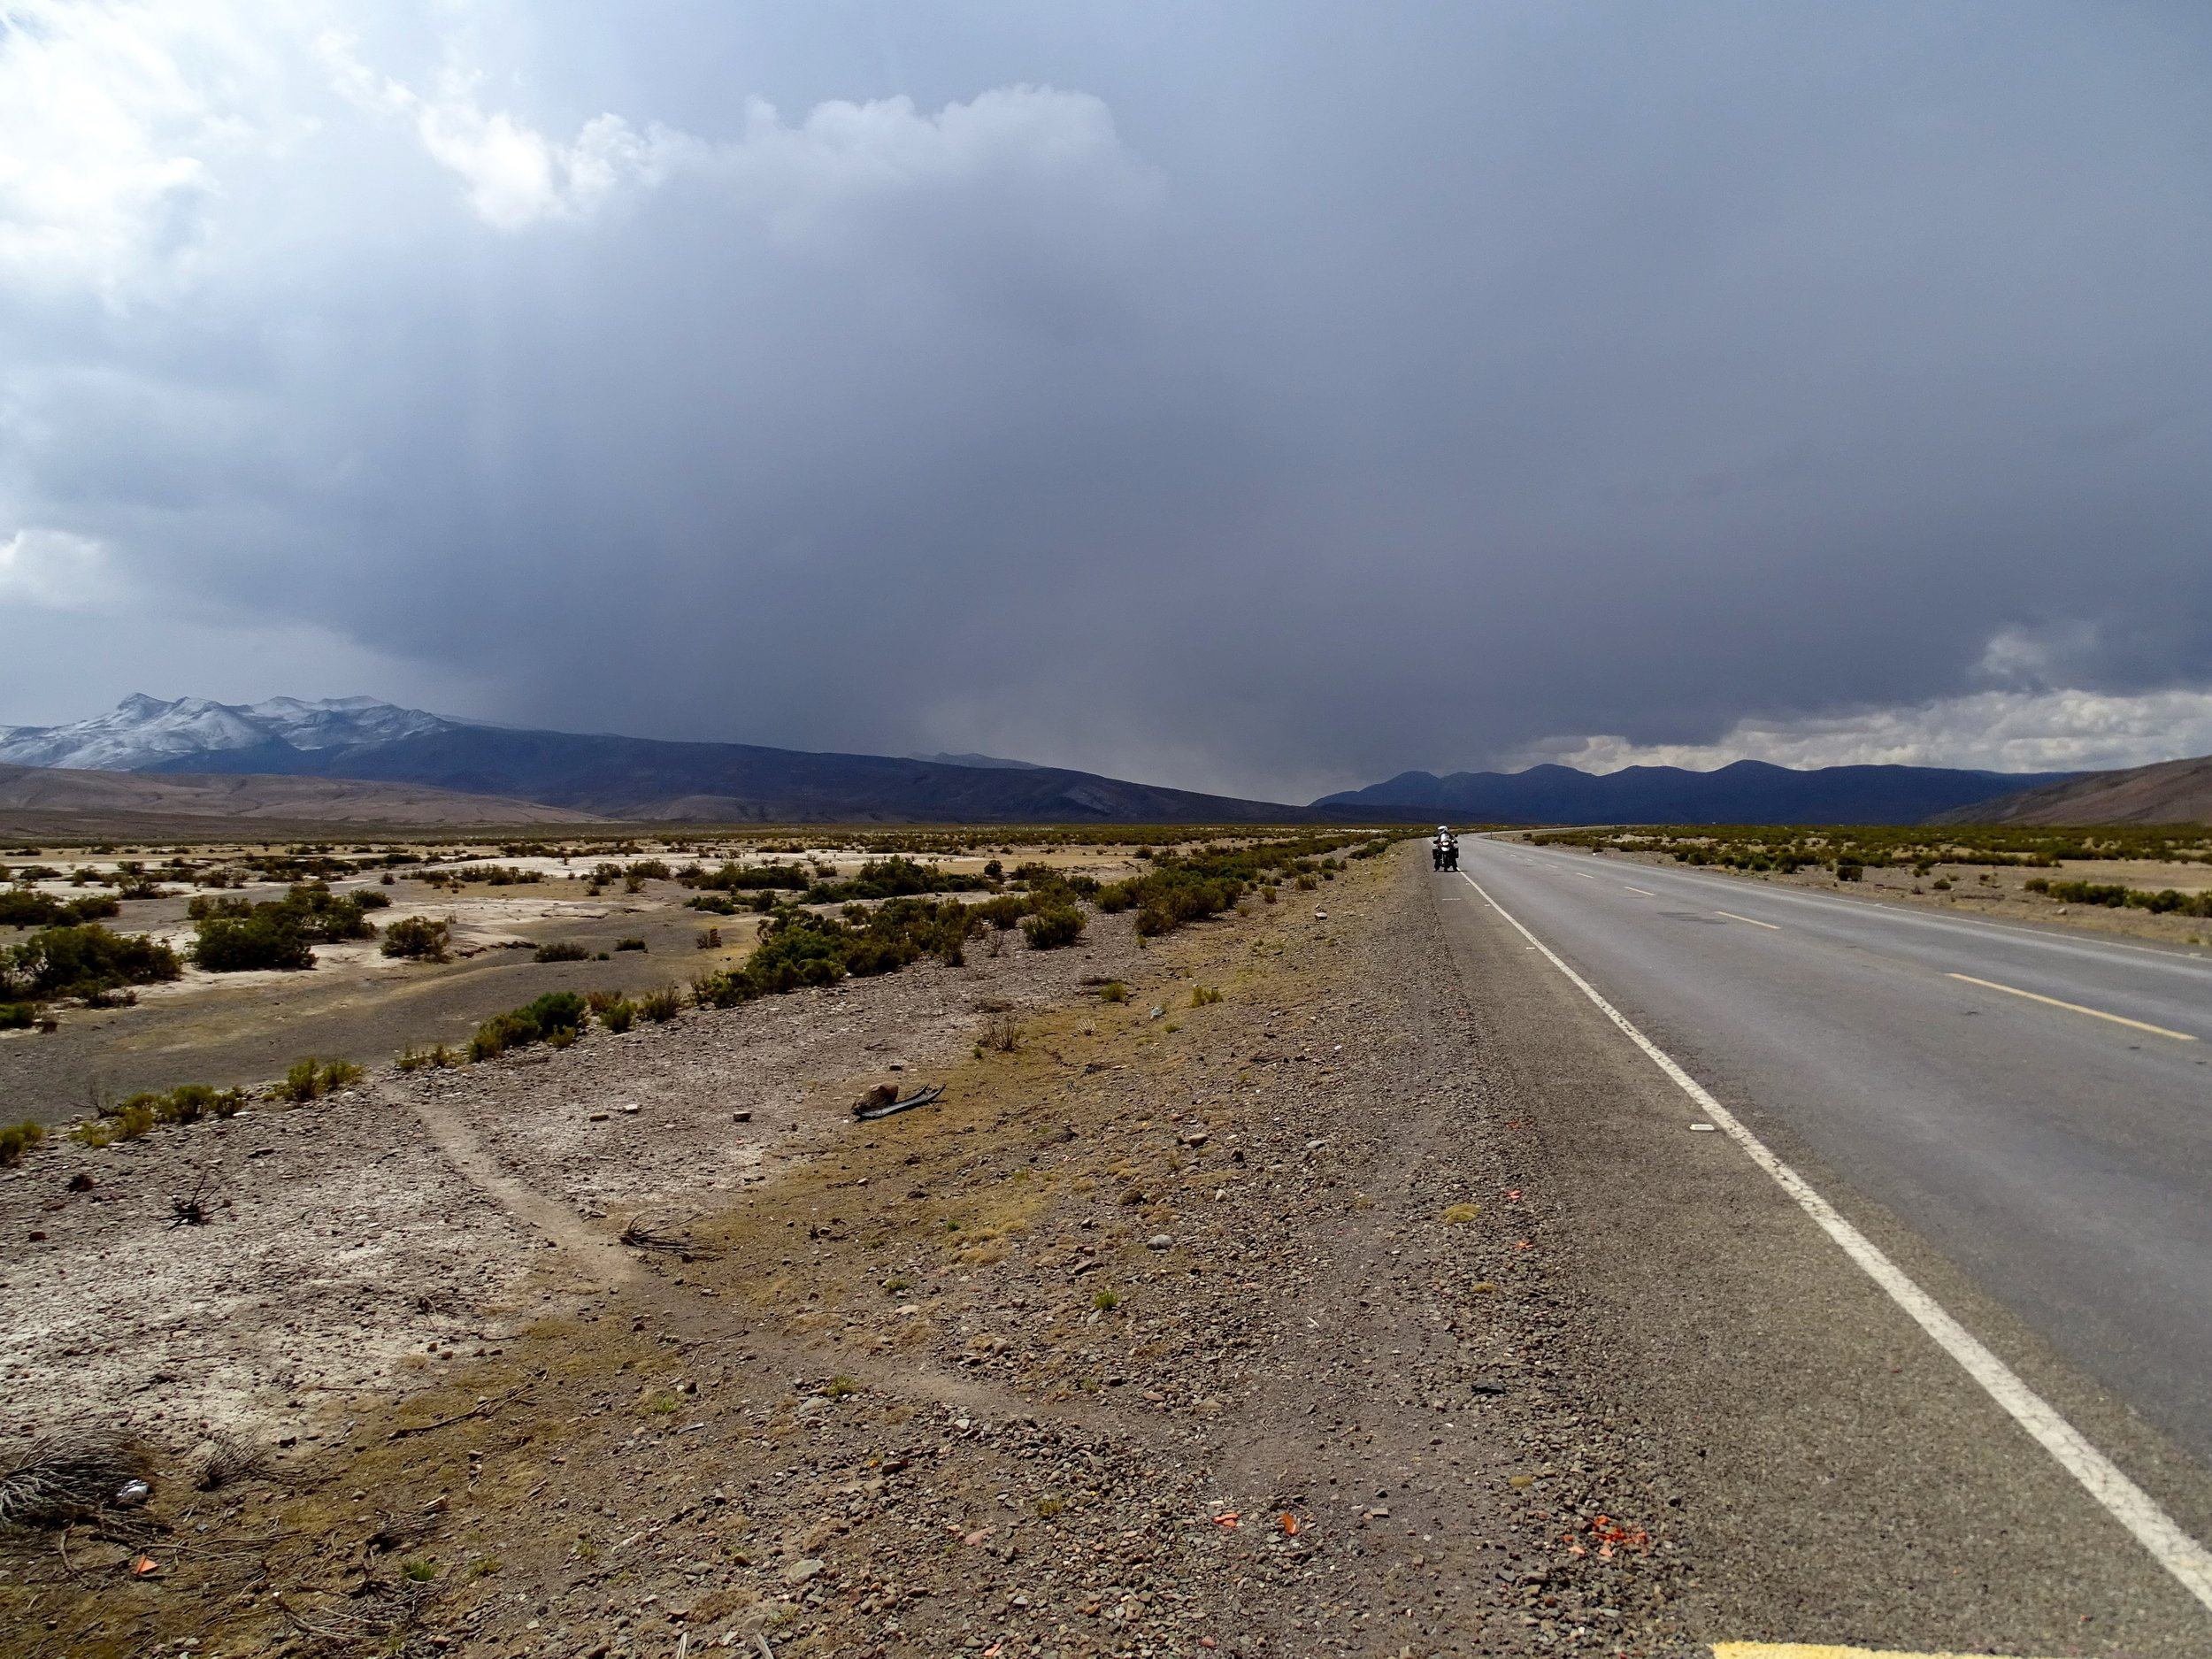 Weather is serious business high on the Altiplano, especially when the road leaves it and heads back into the Andes.